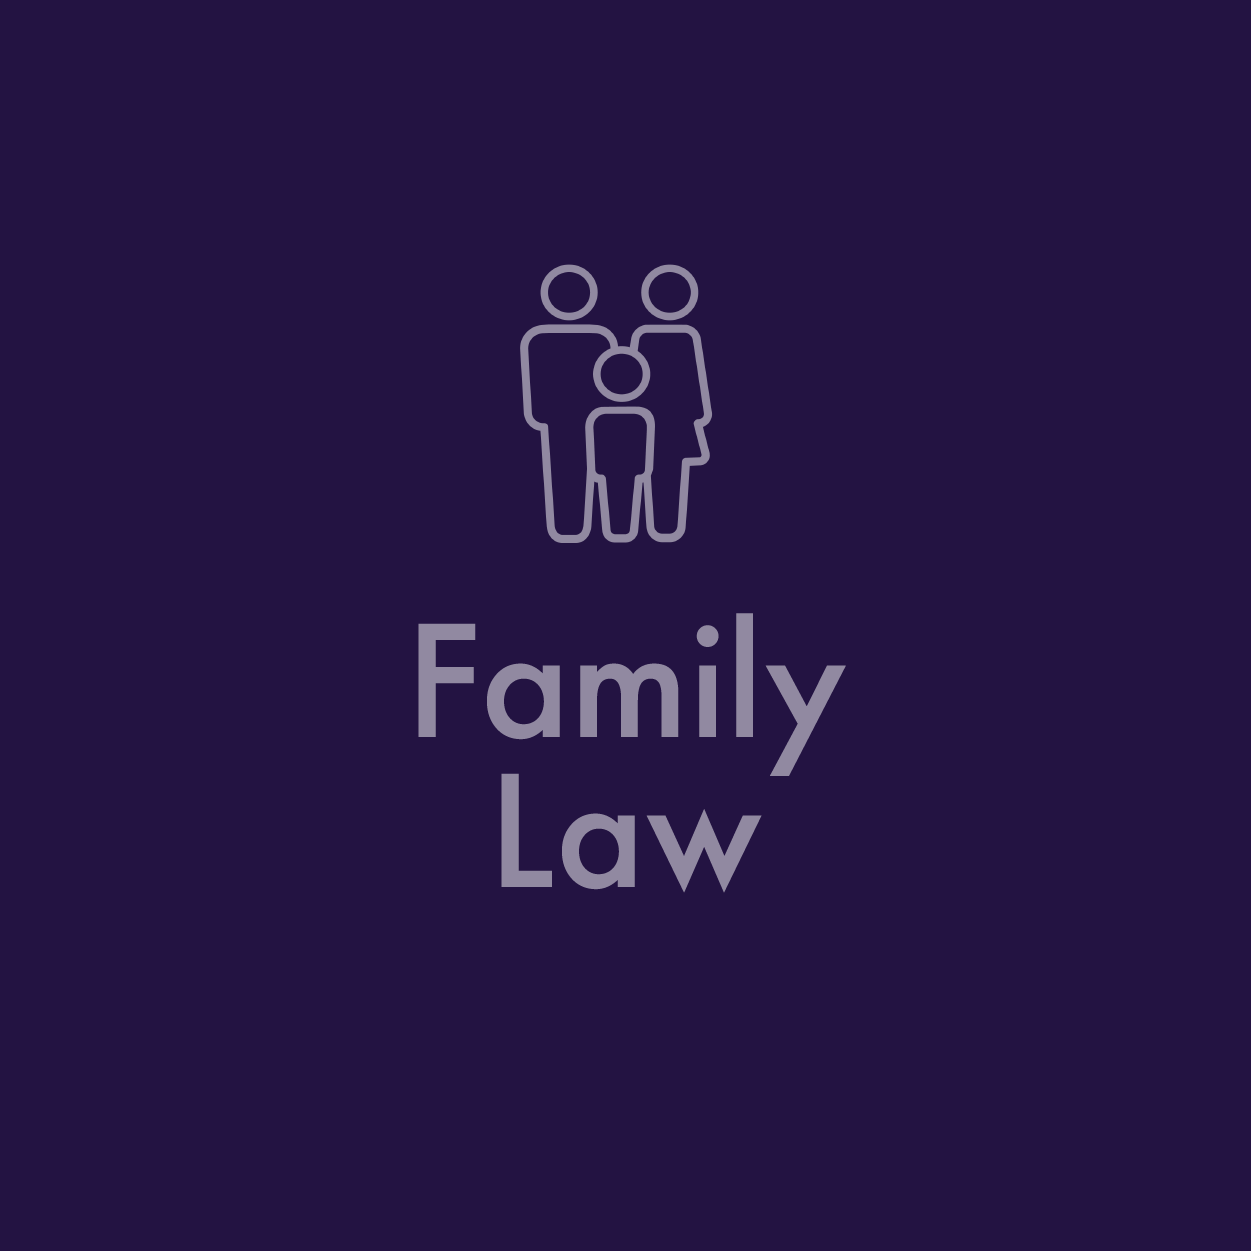 3 Family Law NEW